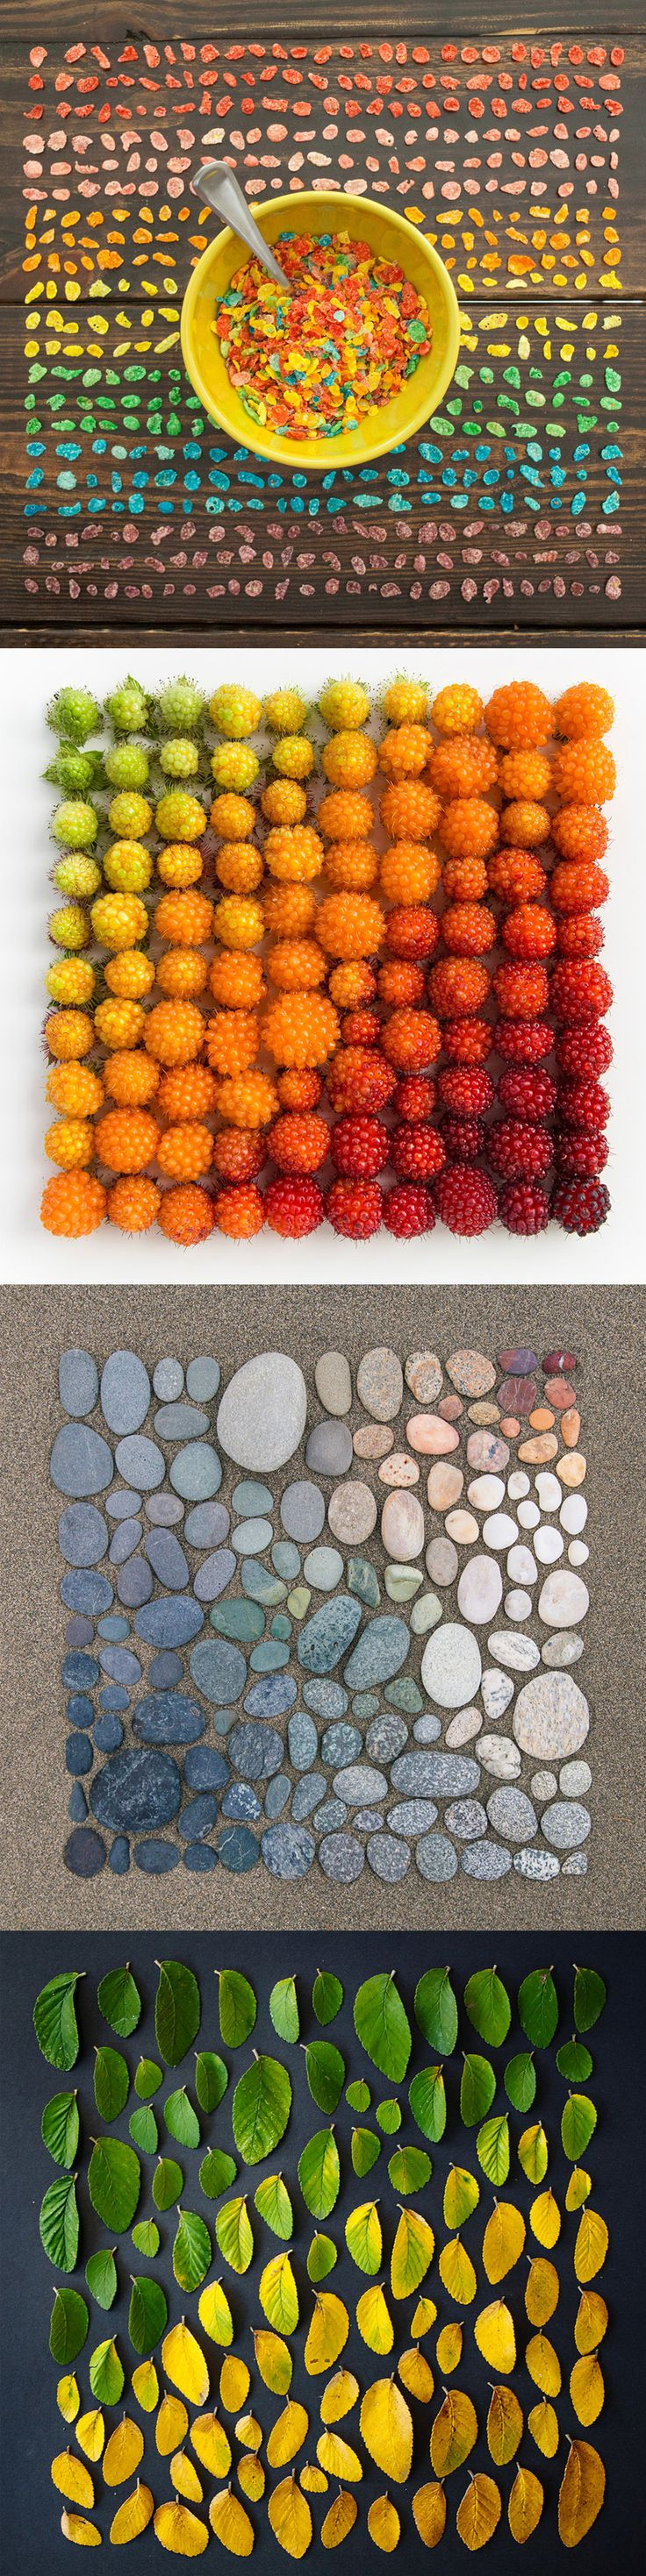 Painstaking Arrangements of Colorful Objects and Food by Emily Blincoe